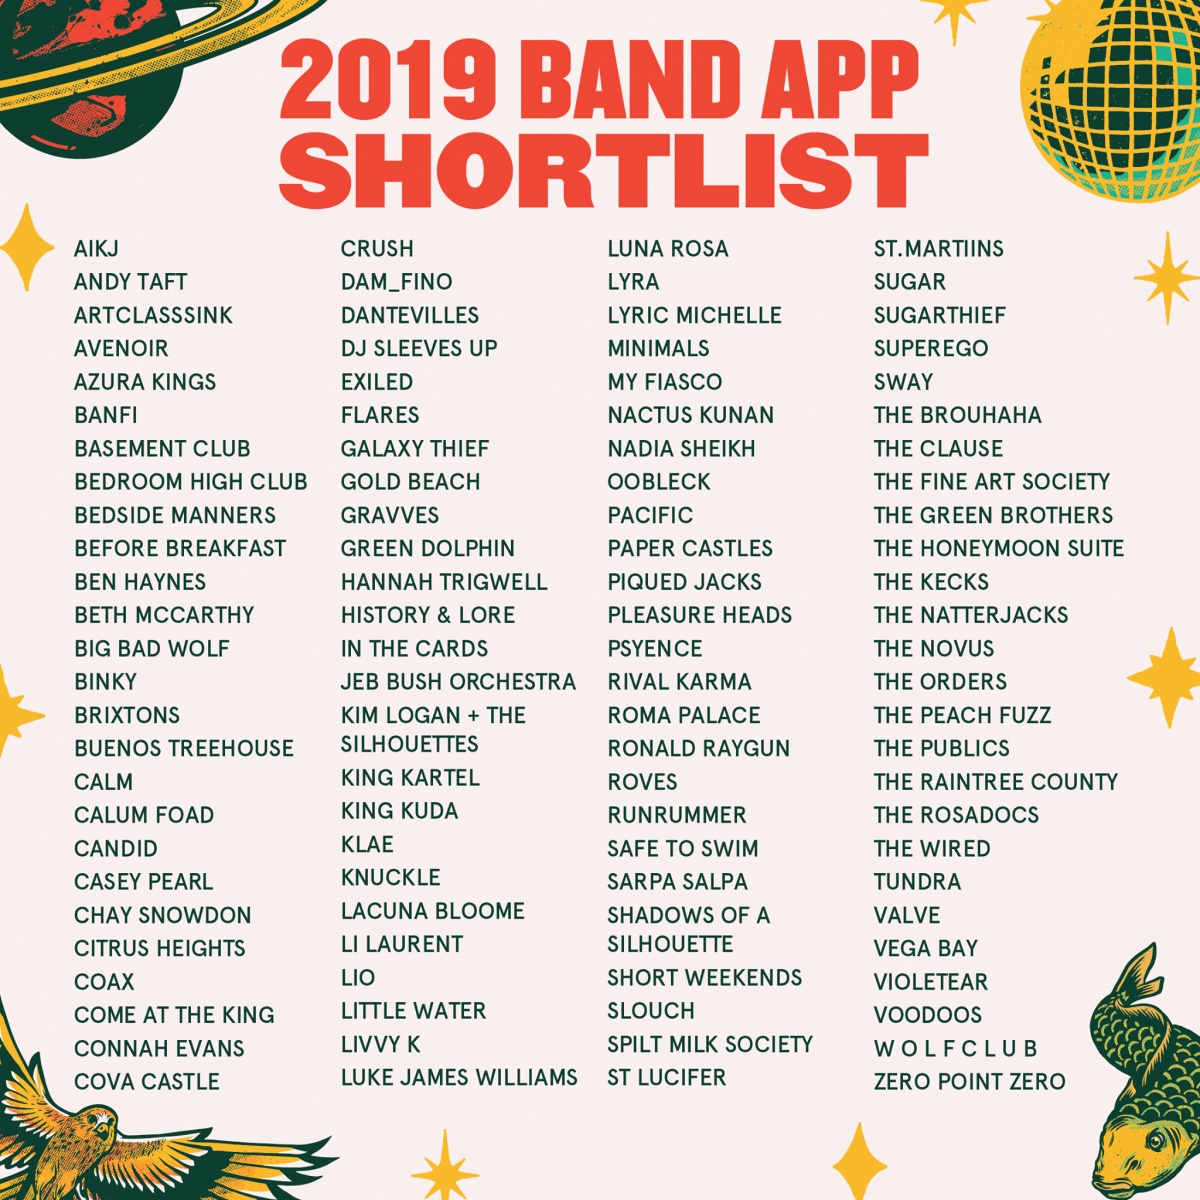 The Band App shortlist is IN....